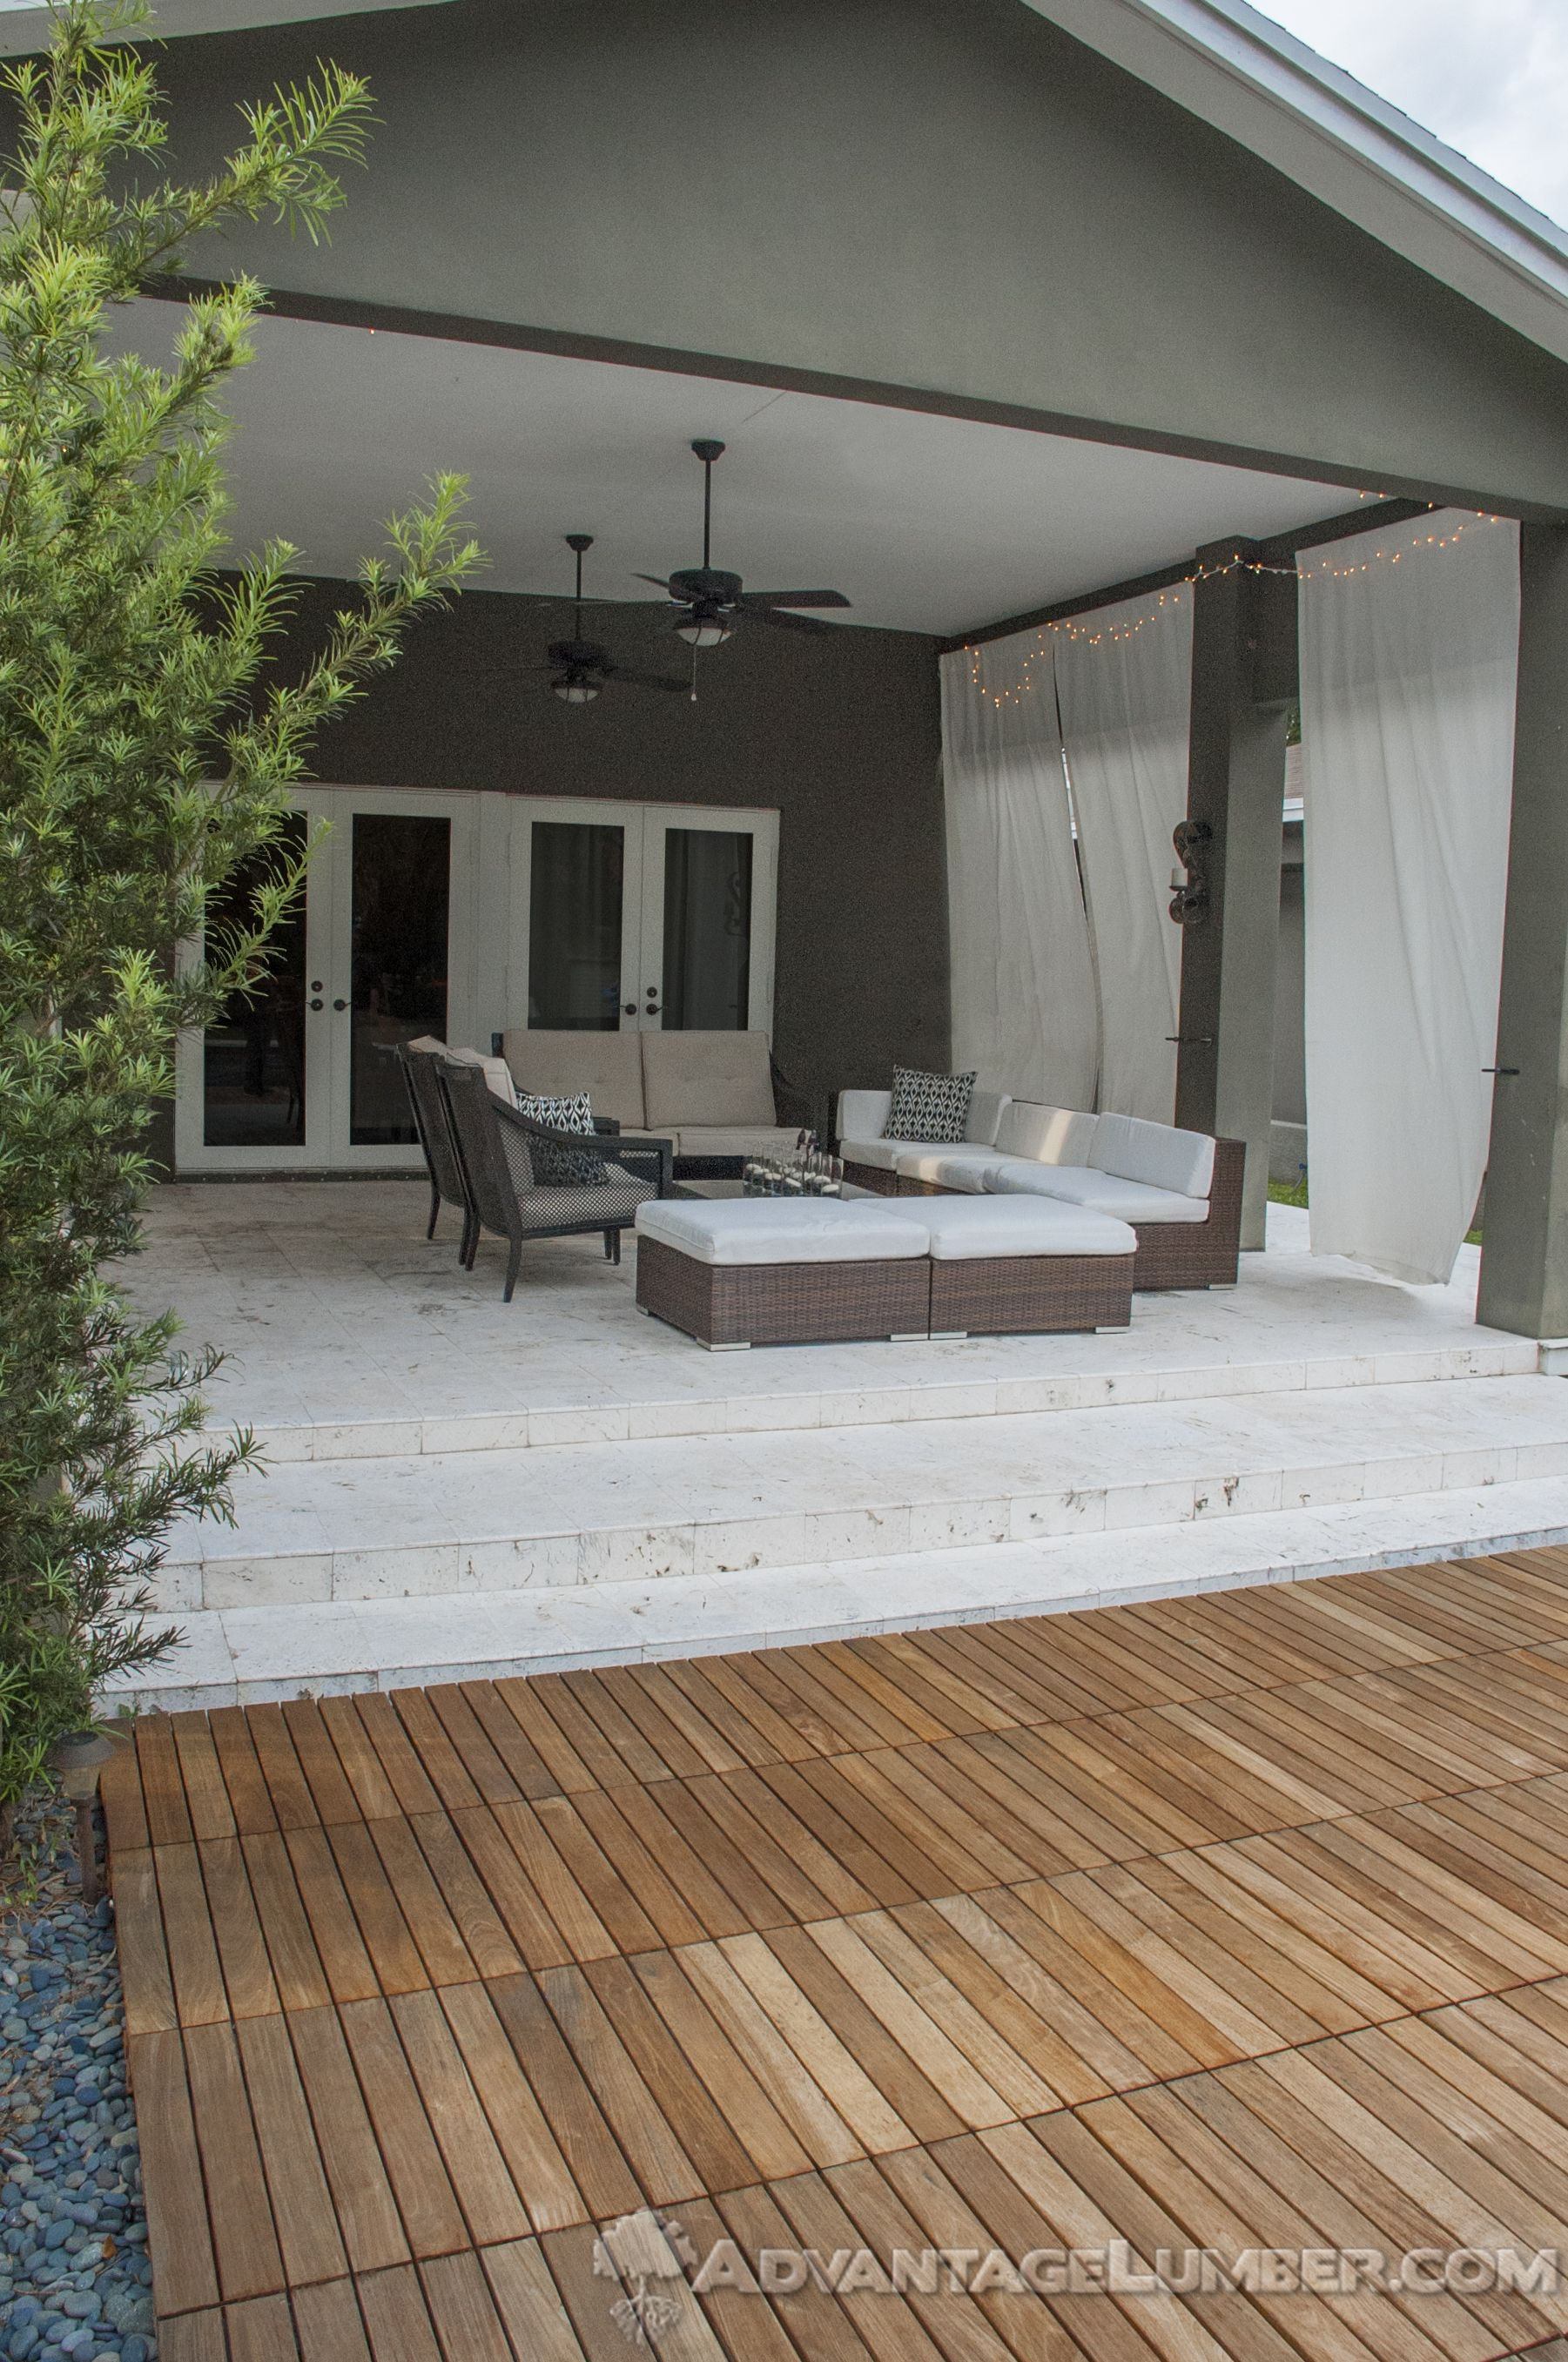 Advantage 20x20 Ipe Deck Tiles Will Give Your Backyard That Little Something Extra Decktiles Diy Miami